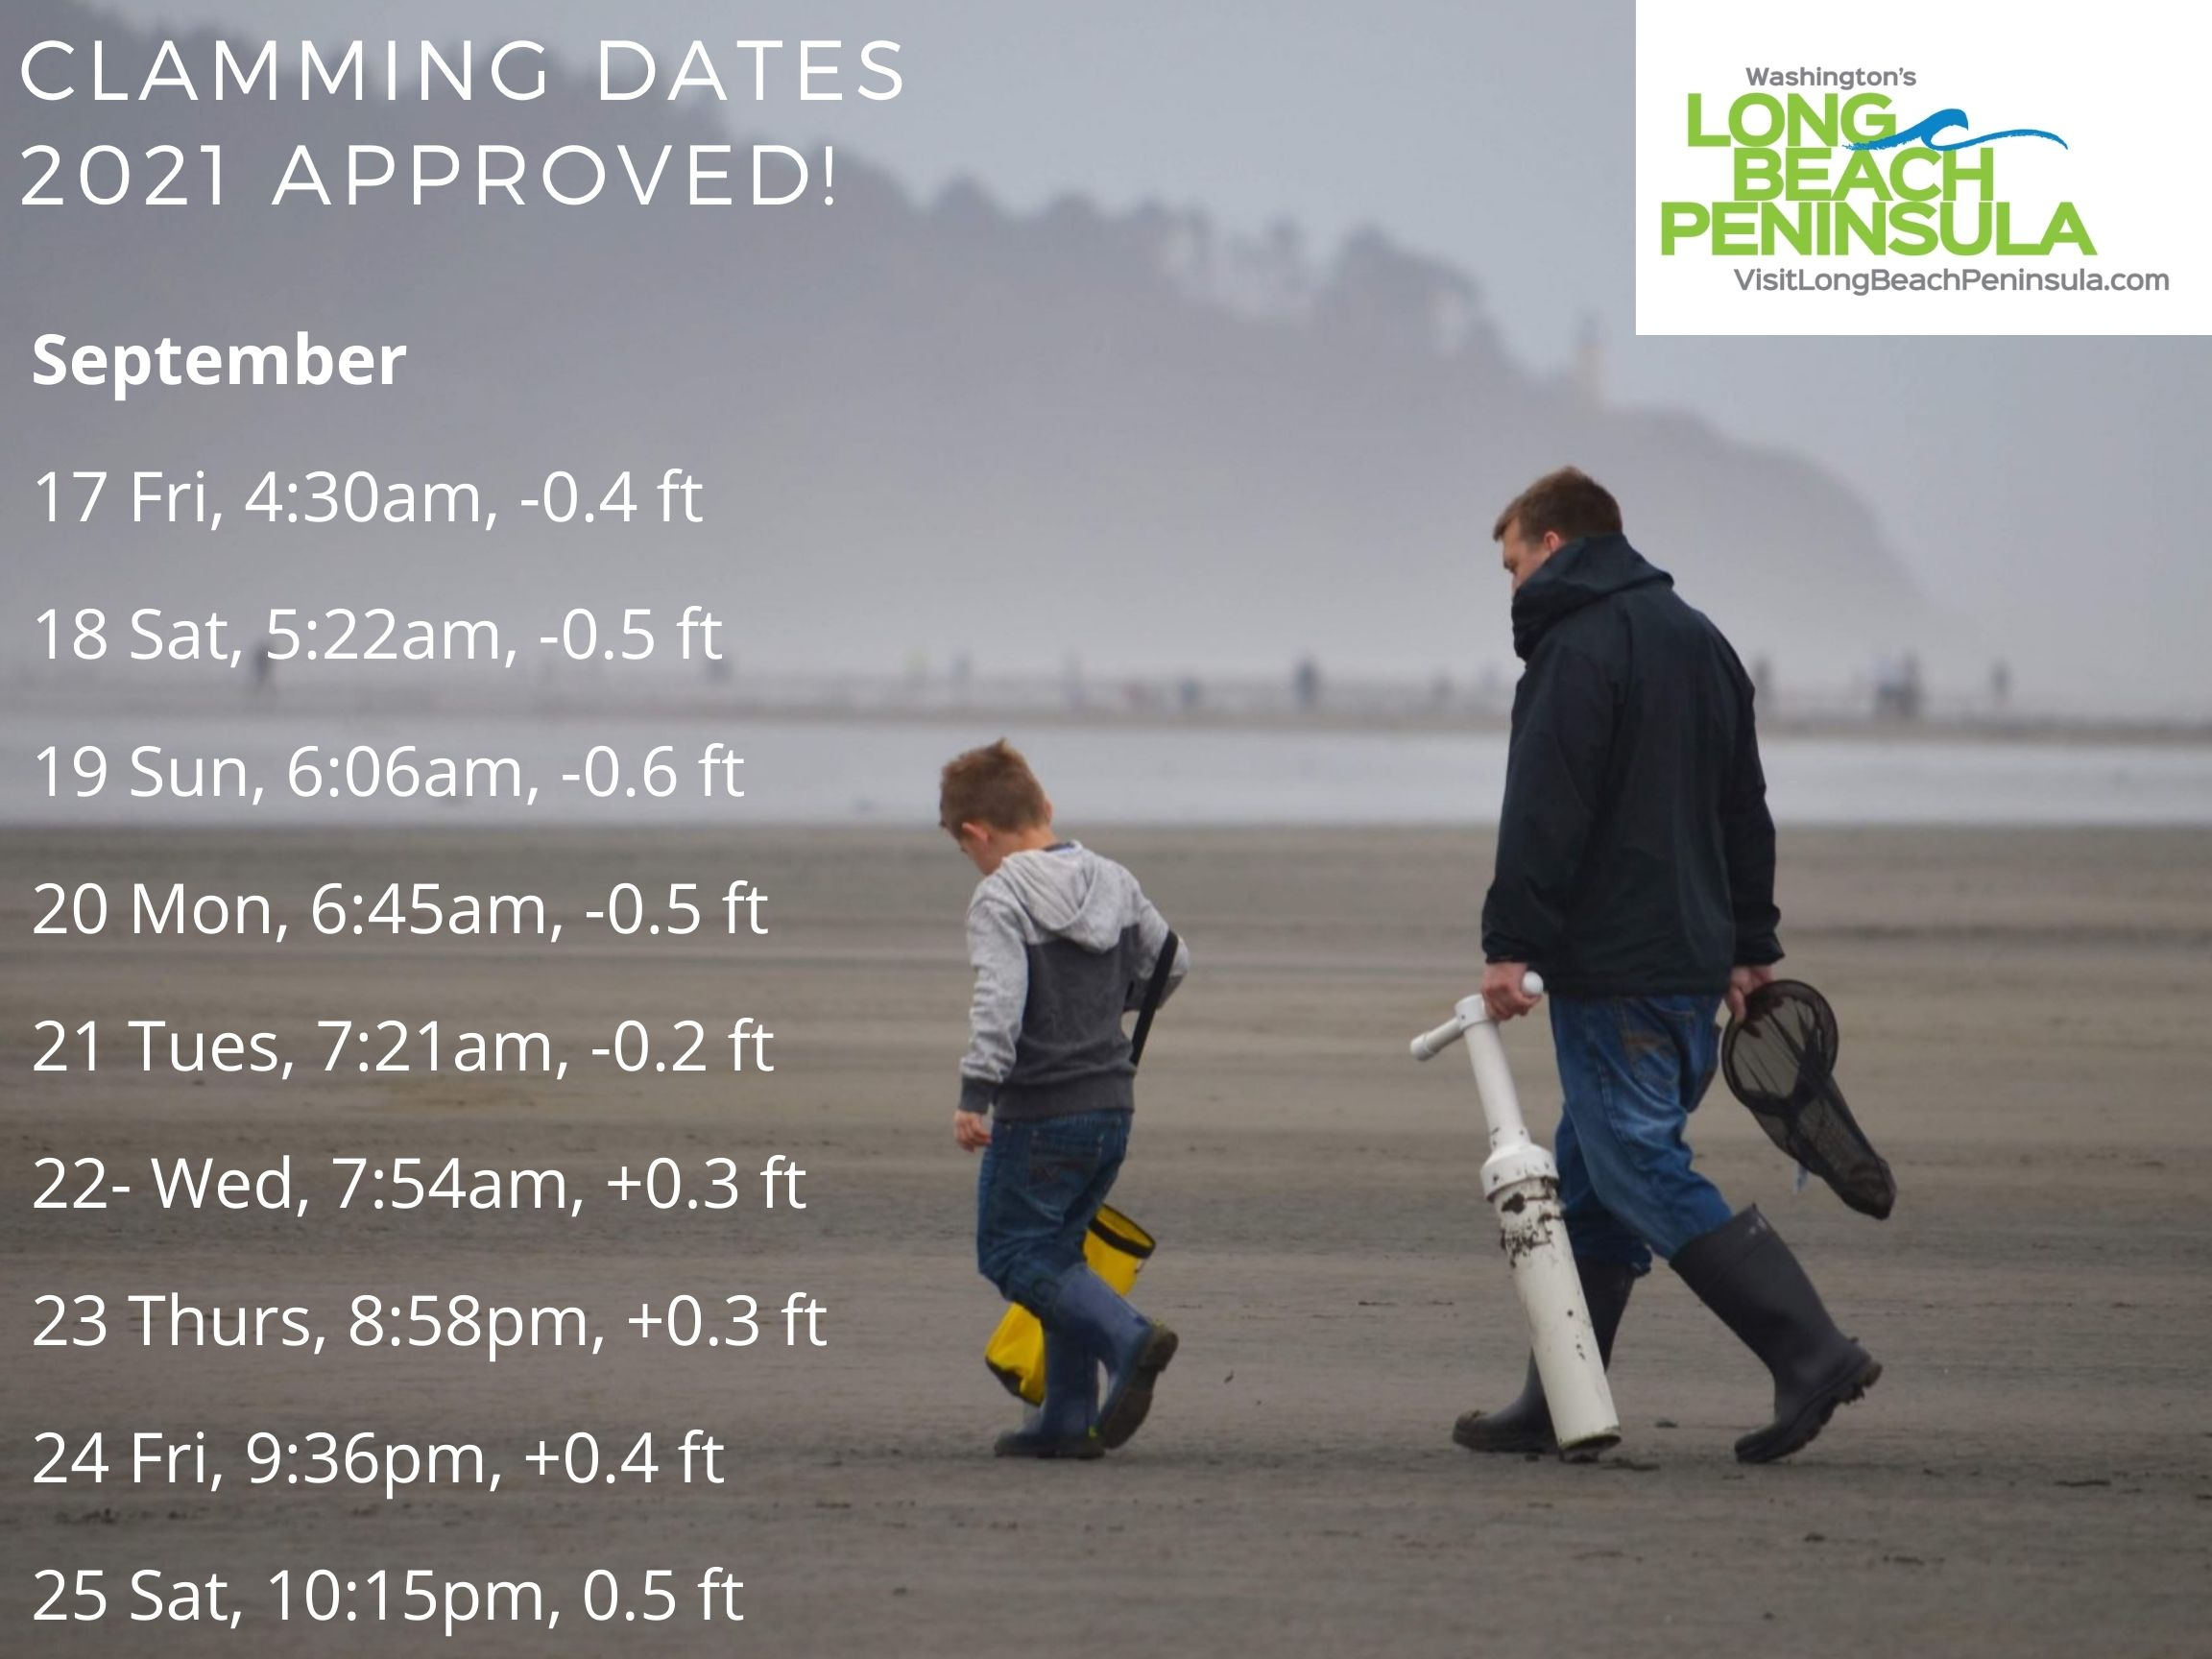 Clamming Dates Approved Sep 2021